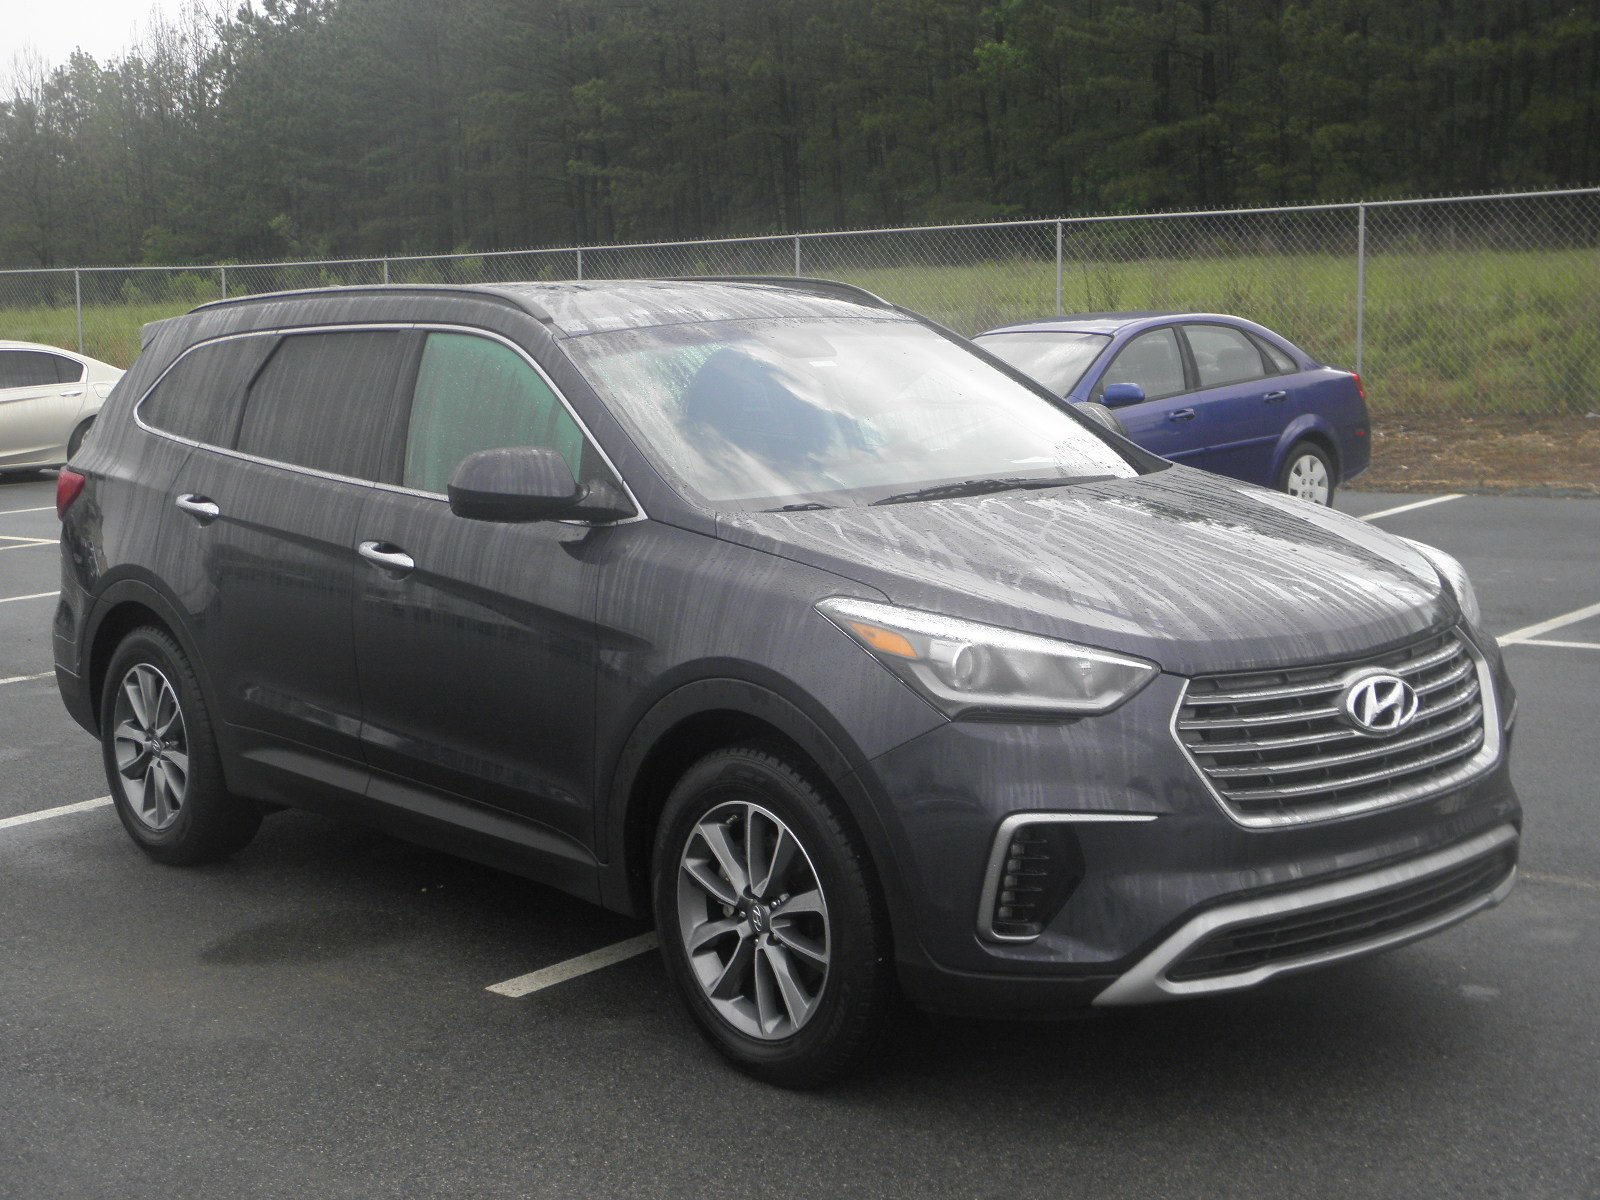 pre owned 2017 hyundai santa fe se sport utility in milledgeville hx7334 butler honda. Black Bedroom Furniture Sets. Home Design Ideas